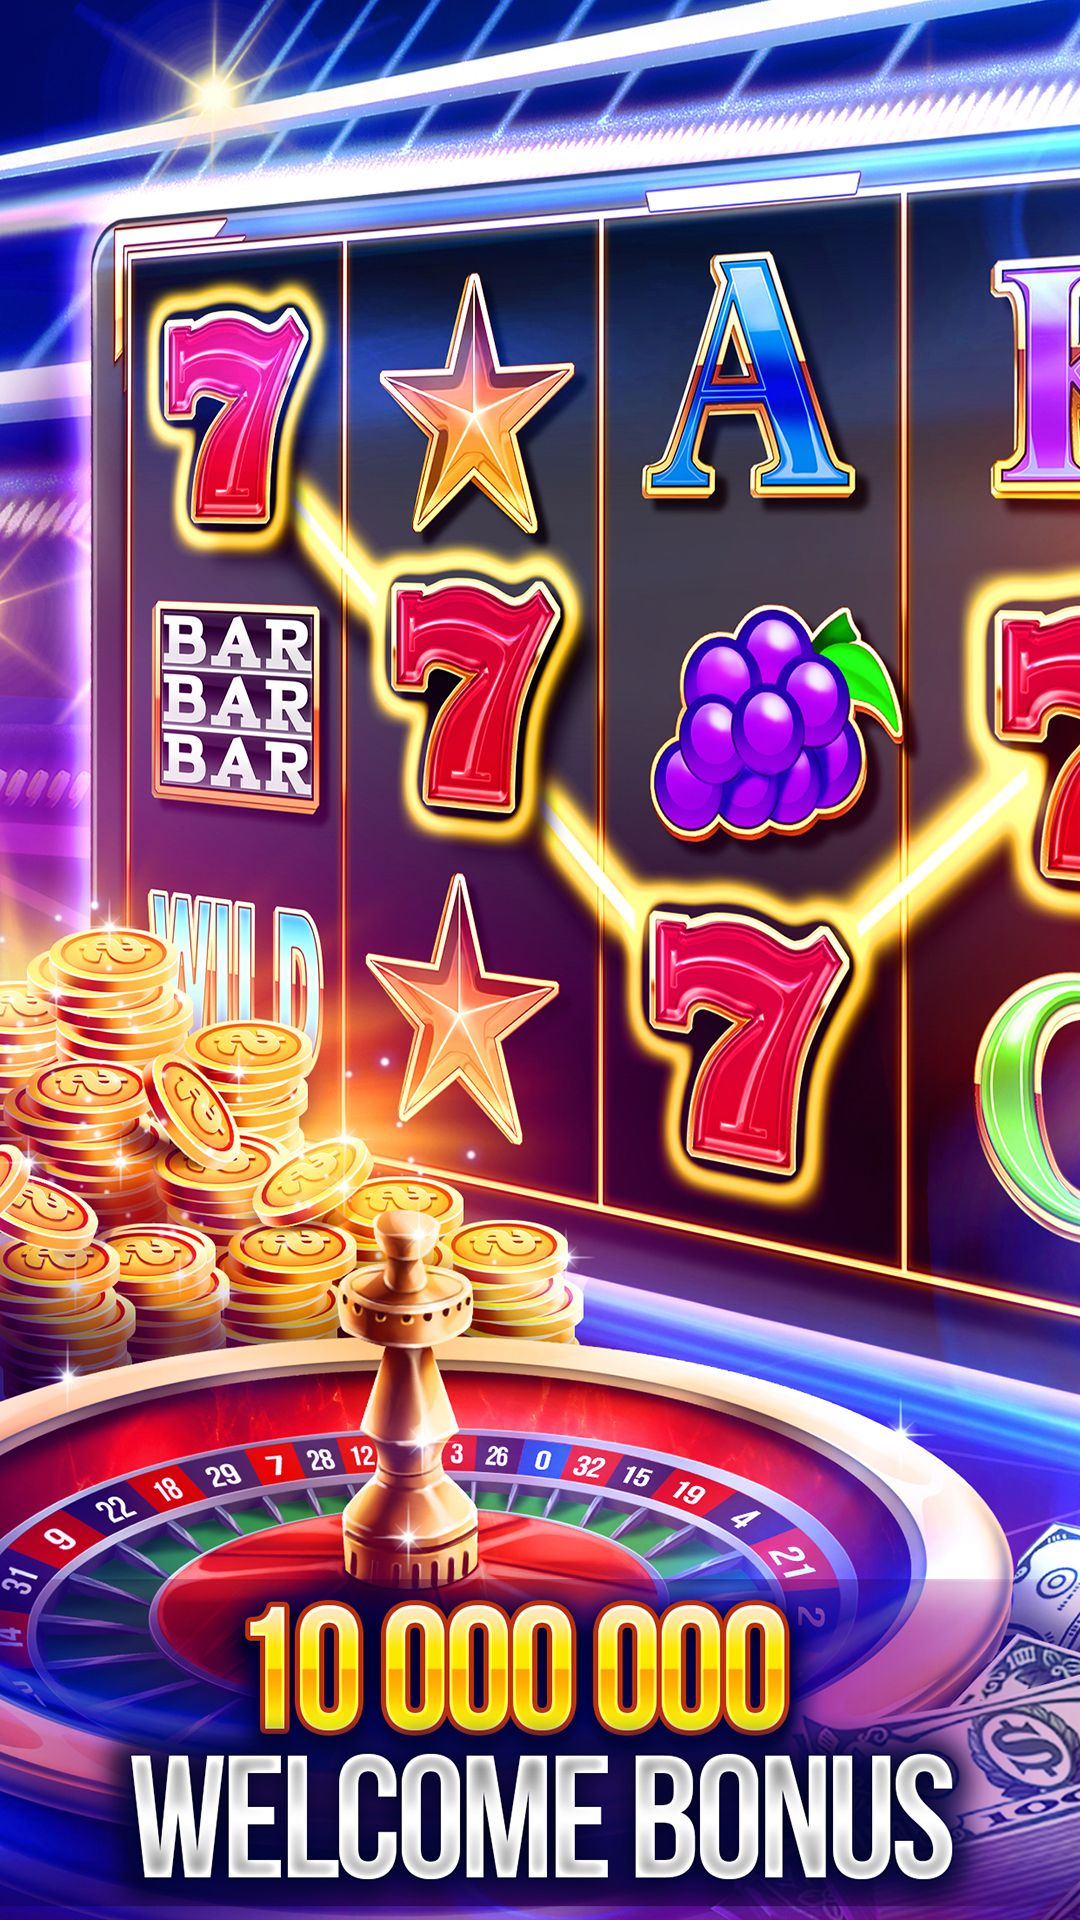 Our slots casino on facebook sign up